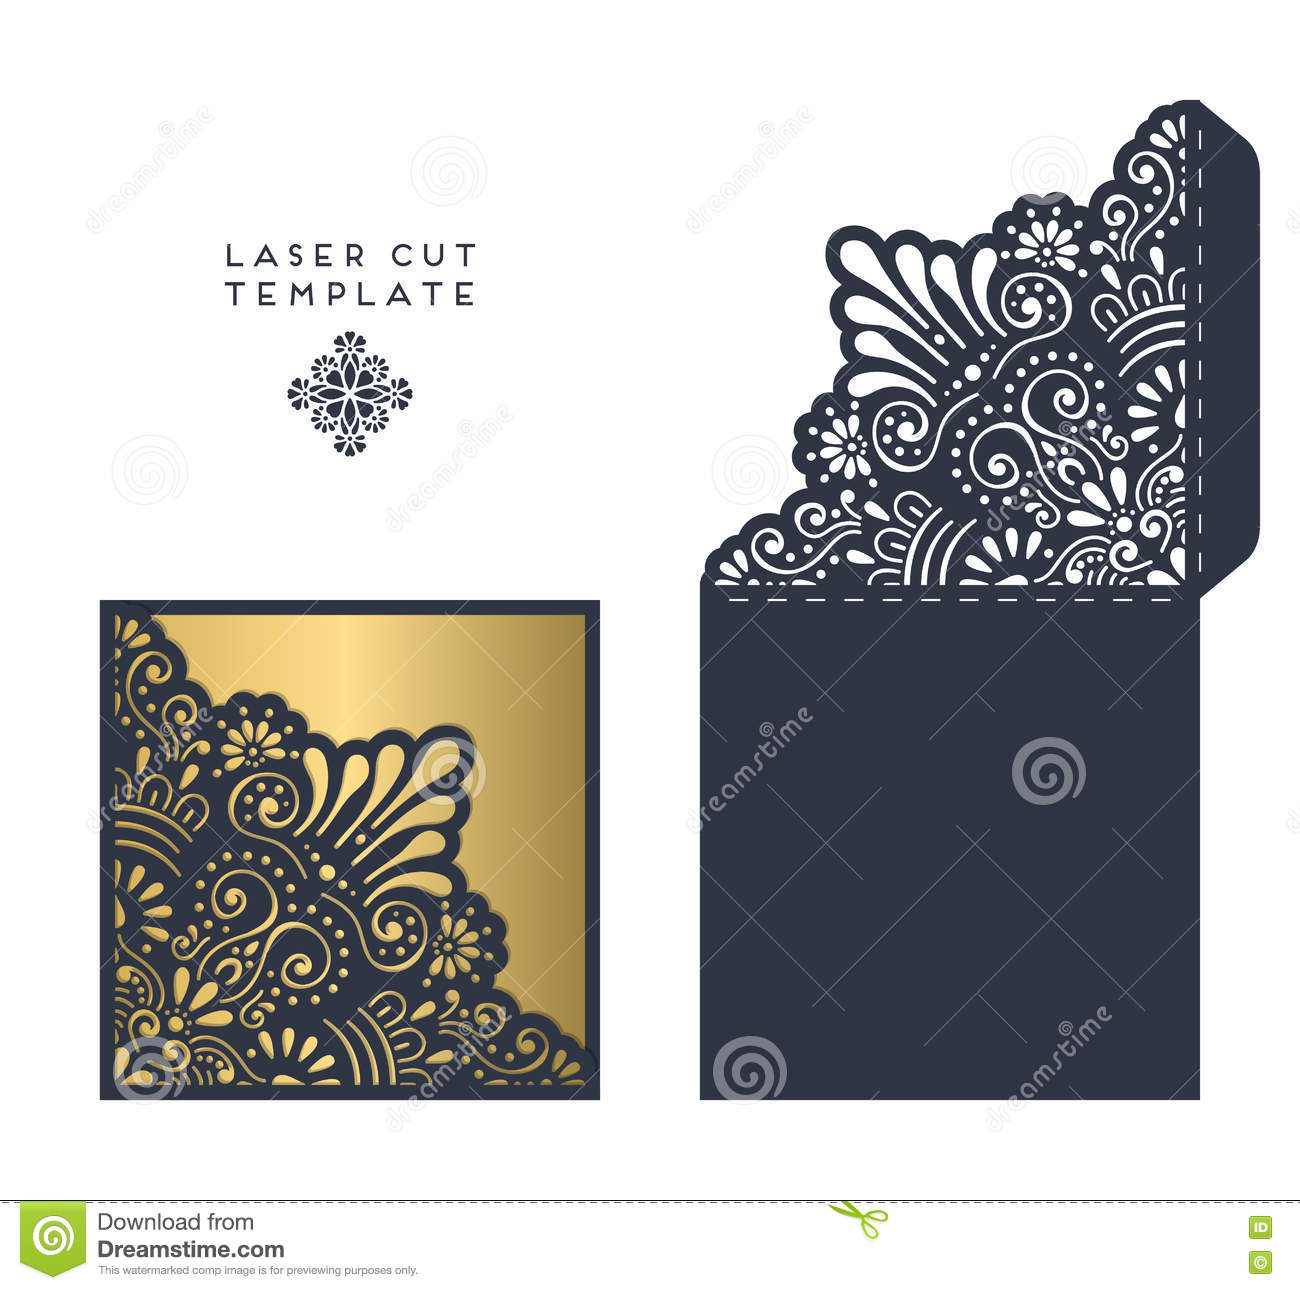 Laser Cut Template Stock Vector - Image: 76874258